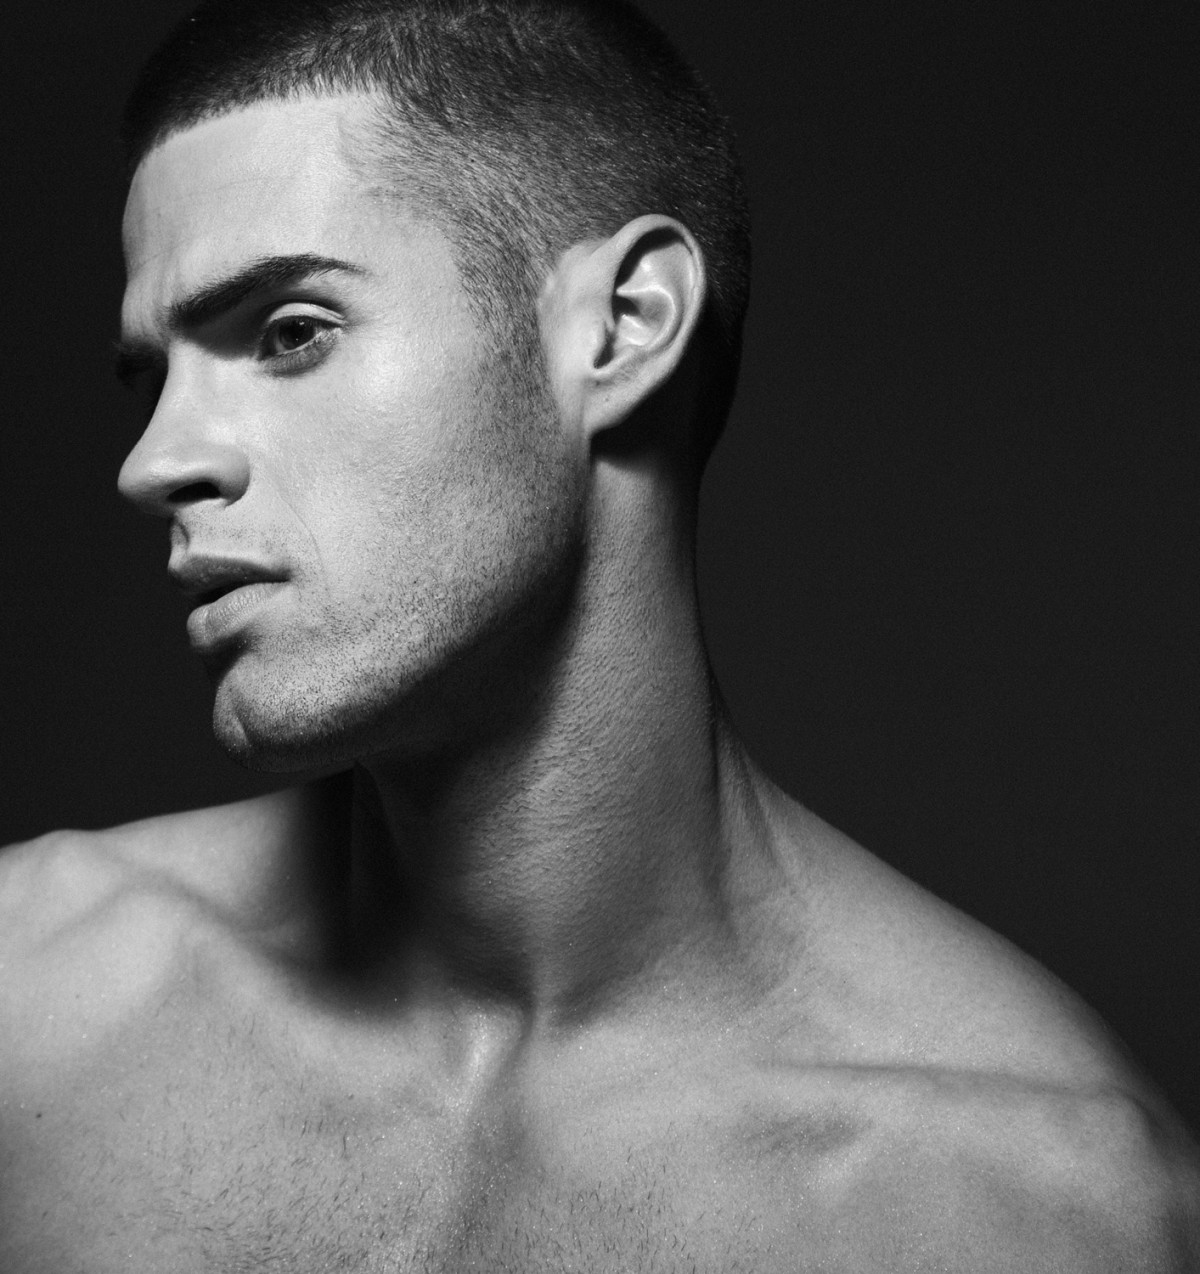 Chad-White-Joseph-Sinclair-Homotography-Exclusive-10